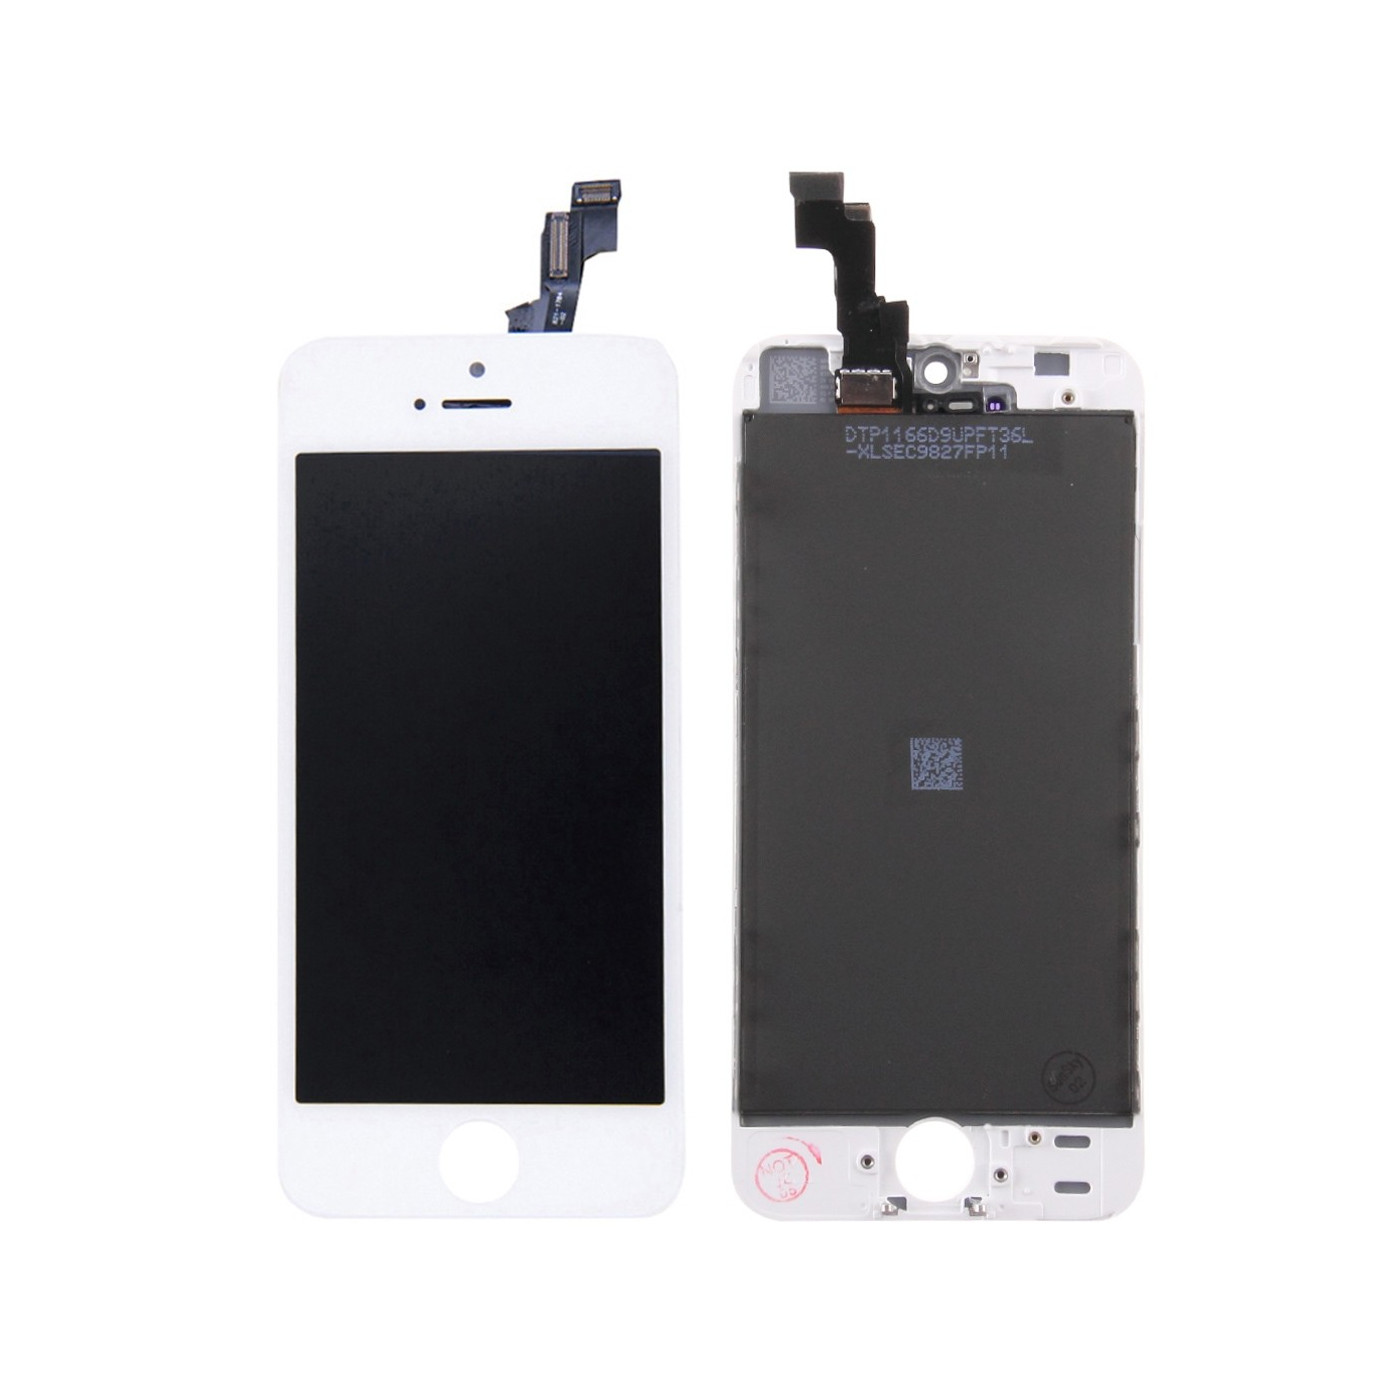 DISPLAY LCD VETRO TOUCH per Apple iPhone 5S BIANCO SCHERMO ORIGINALE TIANMA